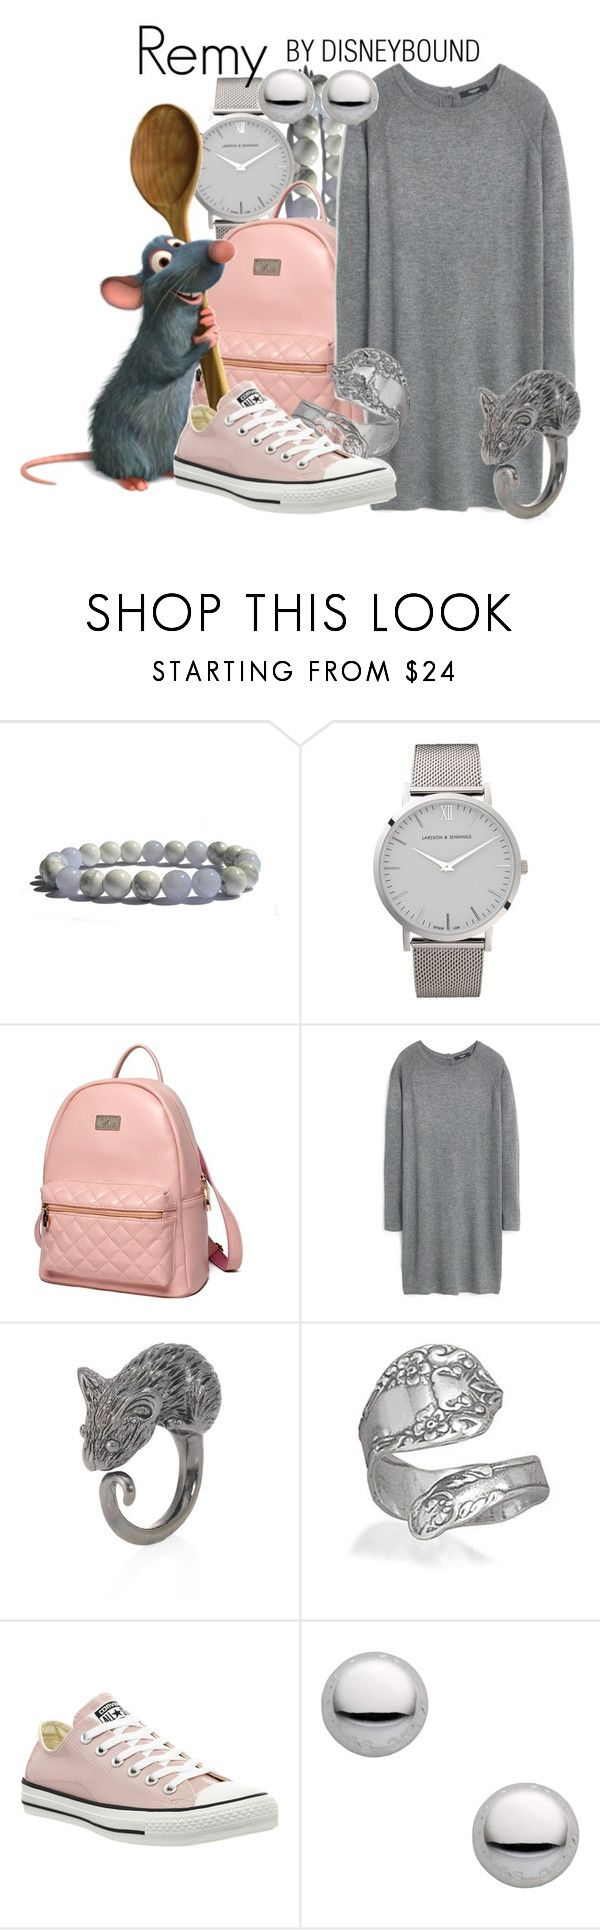 """""""Remy"""" by leslieakay ❤ liked on Polyvore featuring Larsson & Jennings, Princess Carousel, Disney, MANGO, Marc by Marc Jacobs, Bling Jewelry, Converse, disney, disneybound and disneycharacter"""